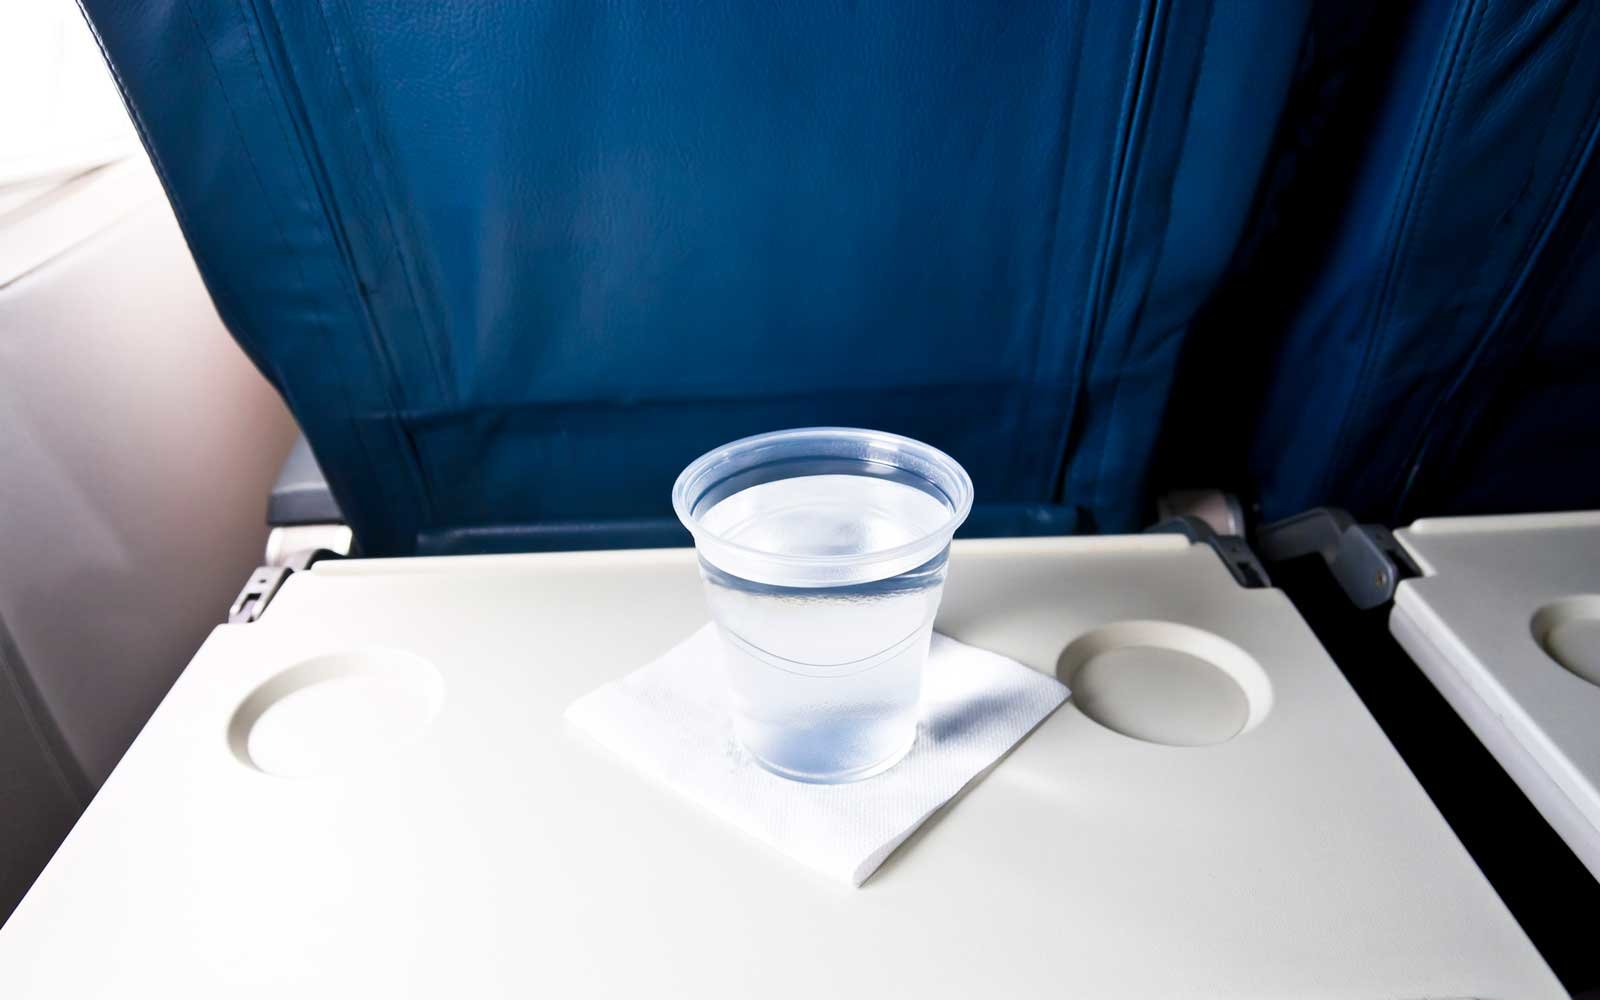 The water on these airlines is so bad you shouldn't even wash your hands with it